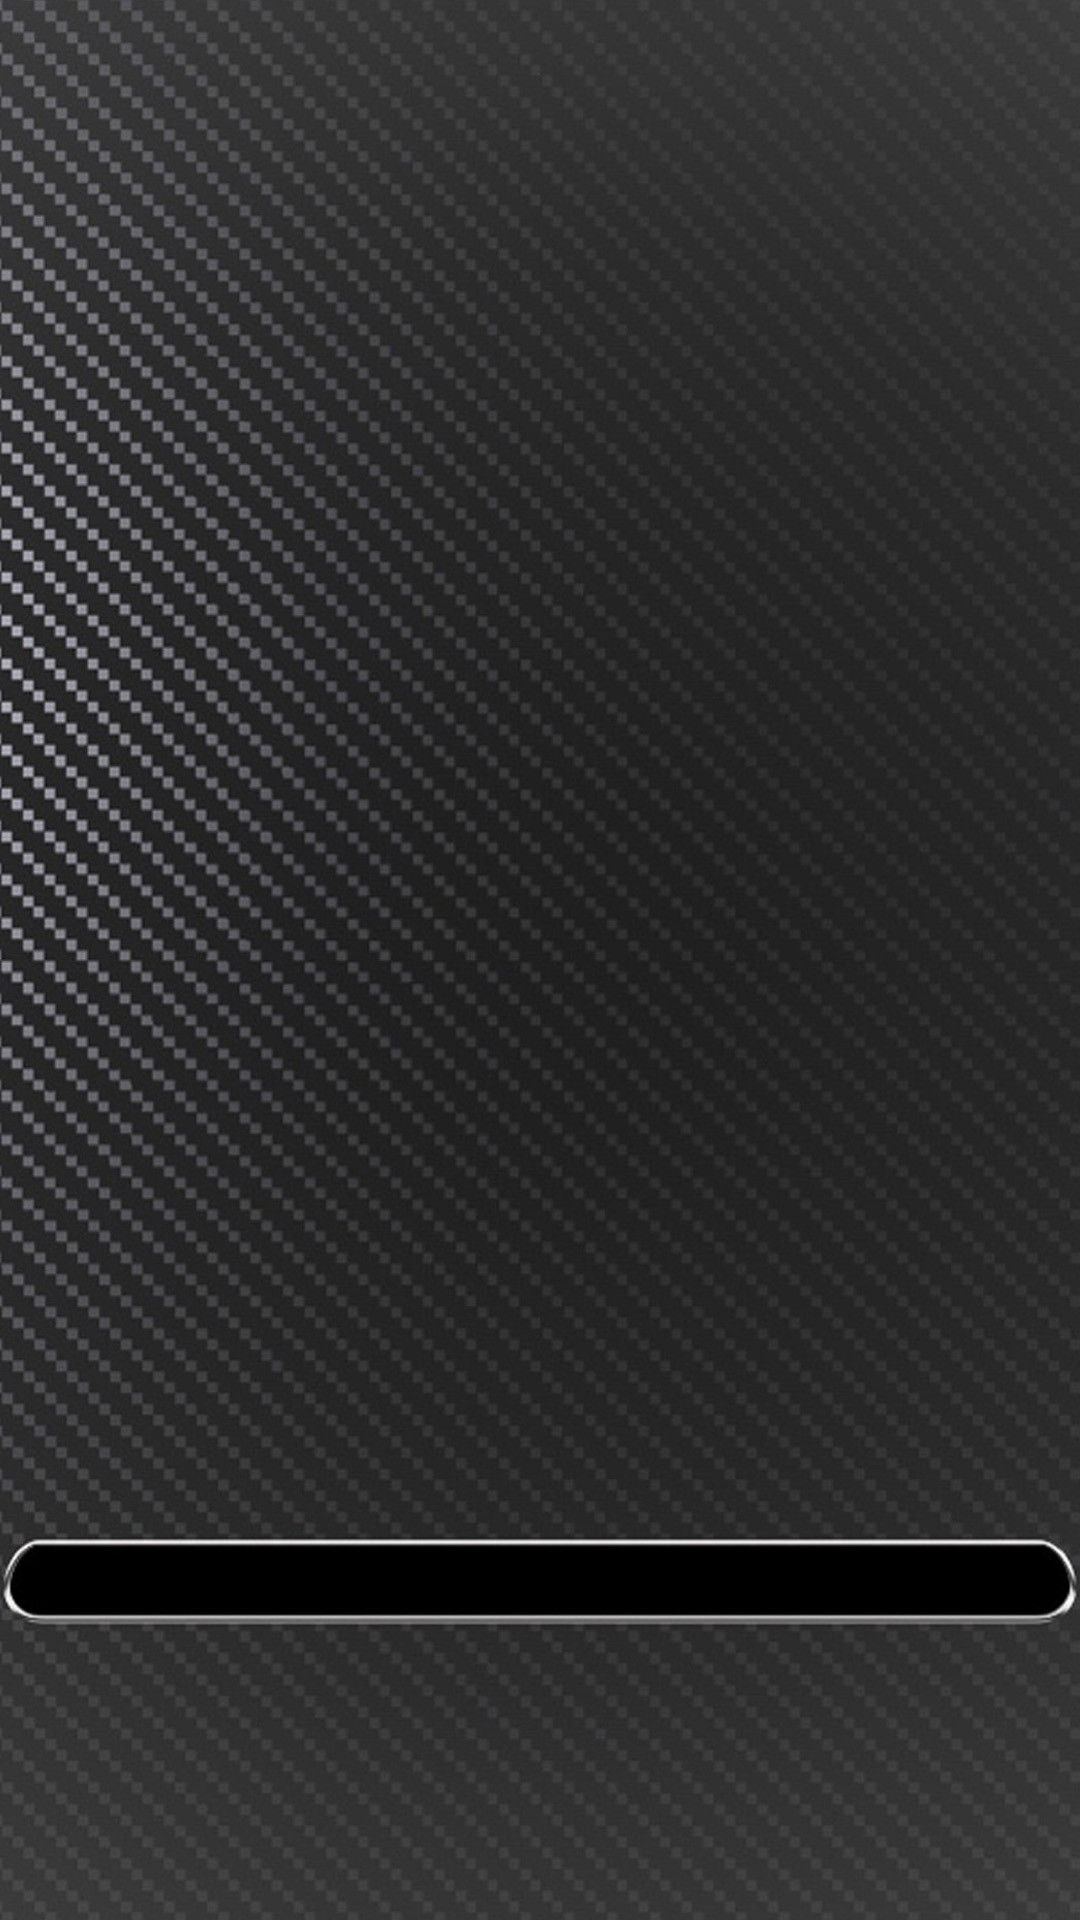 Carbon Fiber Sony Xperia Z2 Wallpapers